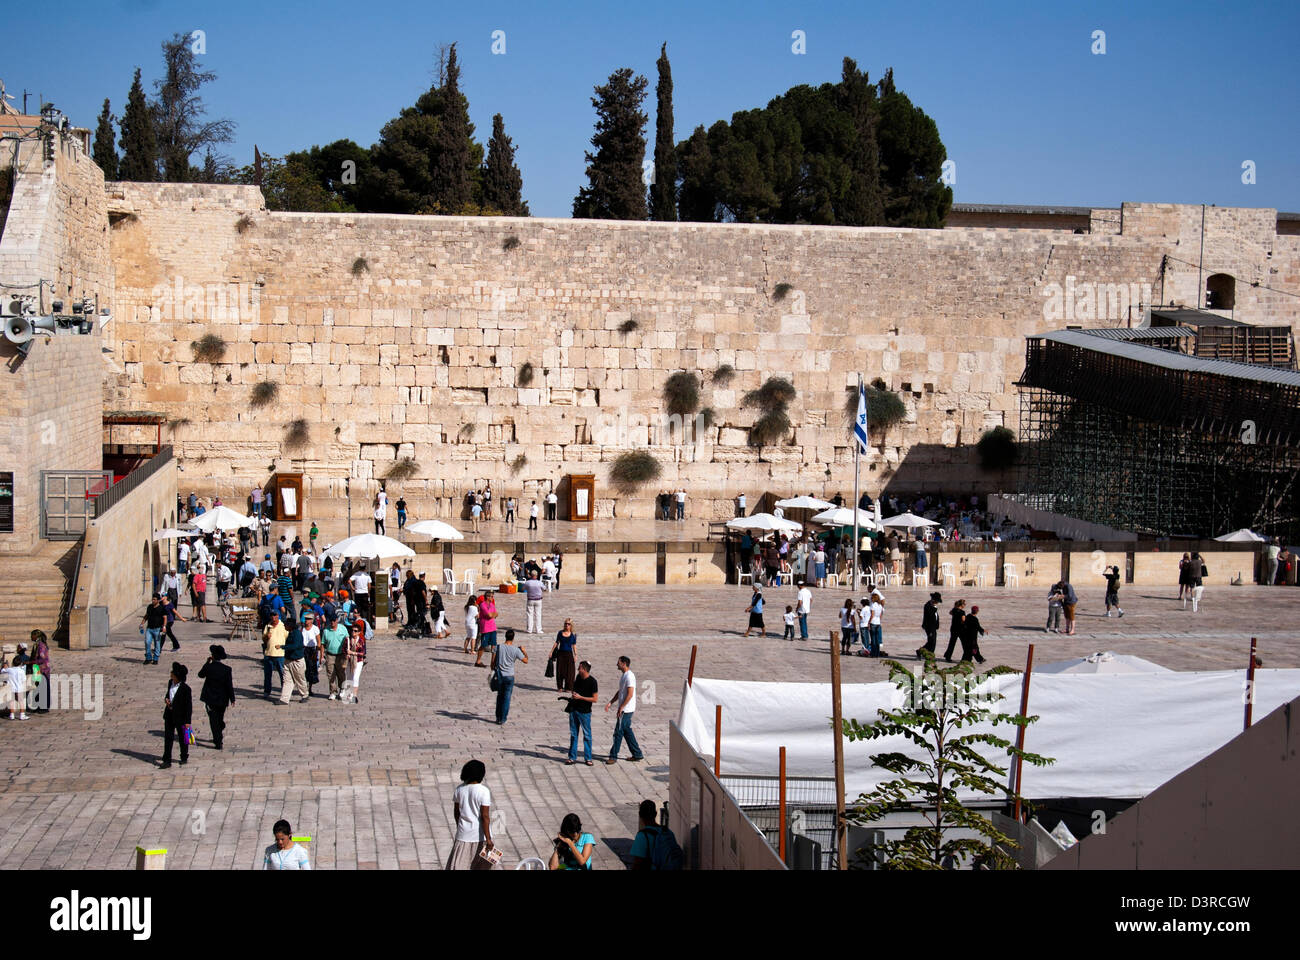 Wailing wall and people mingling outside the barrier Stock Photo